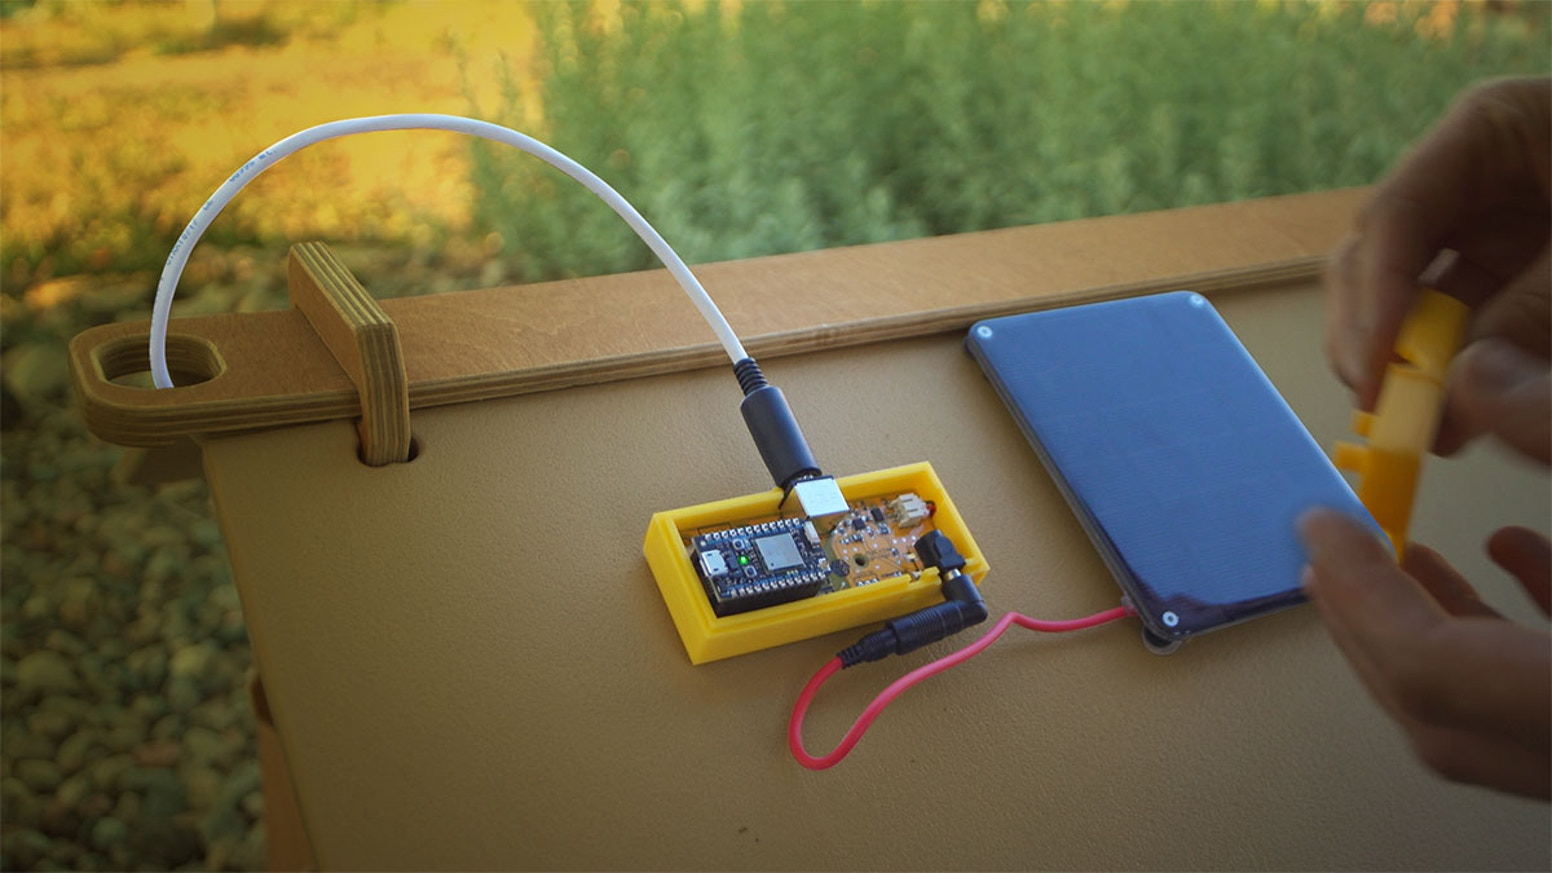 Buzzbox Advanced Beehive Sensor Smartphone App By Aaron Makaruk House Wiring Open Neutral Sensors Help You Track Hive Health From Your Buy One Or Support Citizen